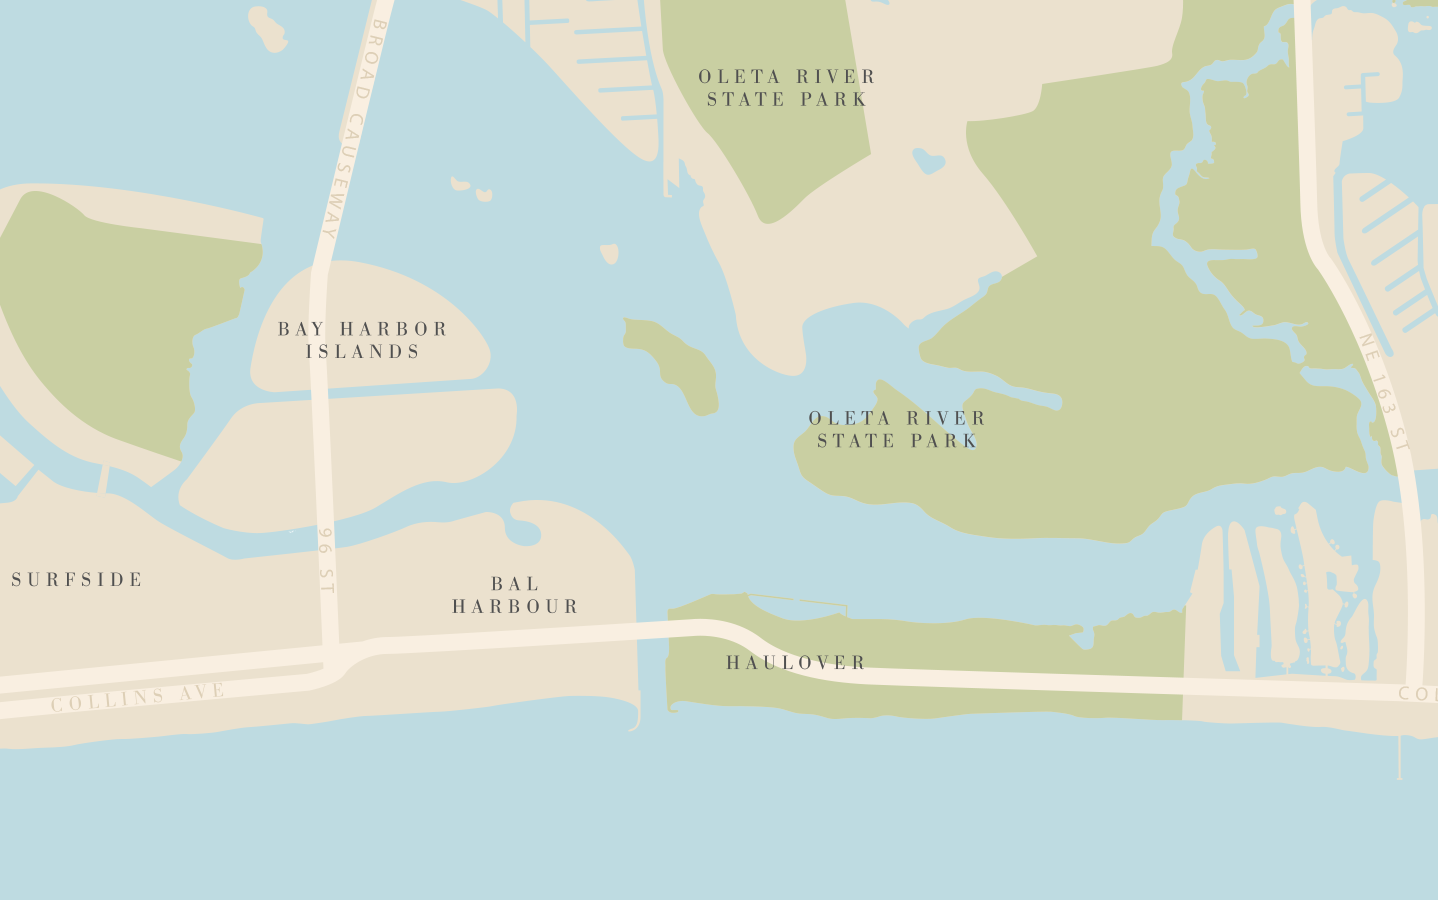 bijou-bay-harbor-on-map